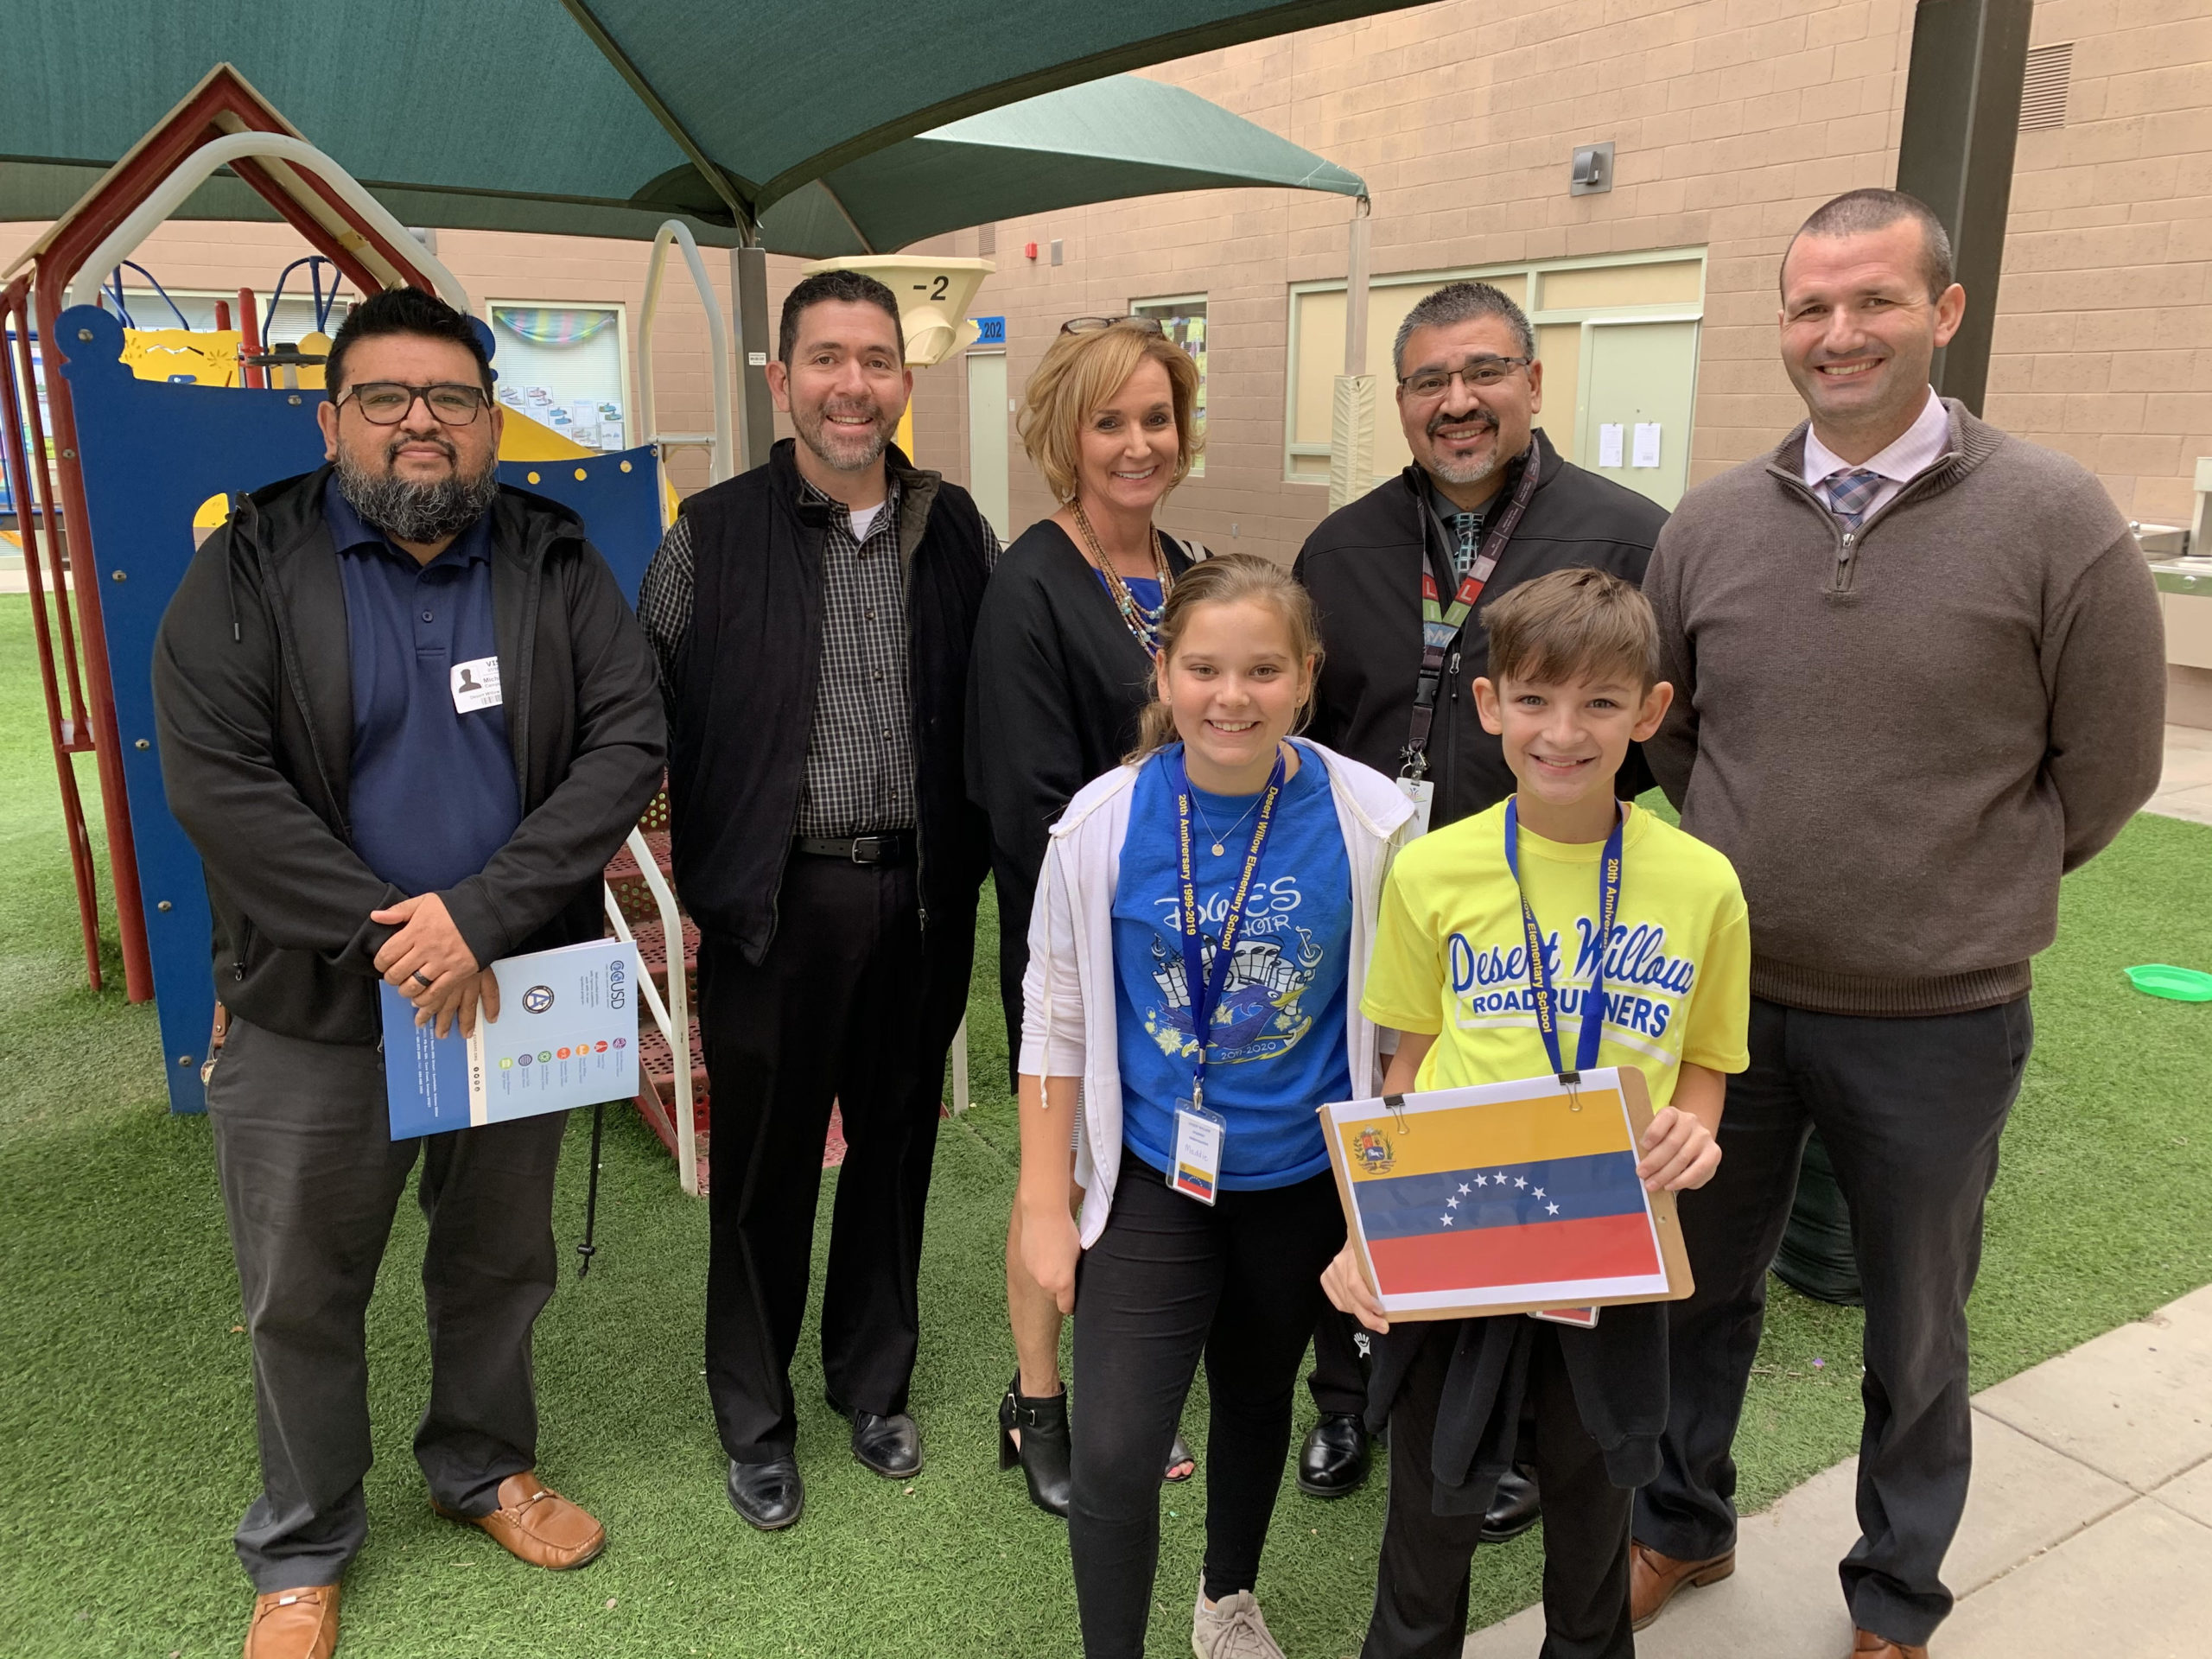 Desert Willow Students Take Visitors Through Spanish Immersion Classrooms During The Embassy Of Spain Tour Day. Visitors Here Were From Kyrene, Laveen, Higley And Phoenix School Districts. Photo Courtesy Of Cave Creek Unified School District